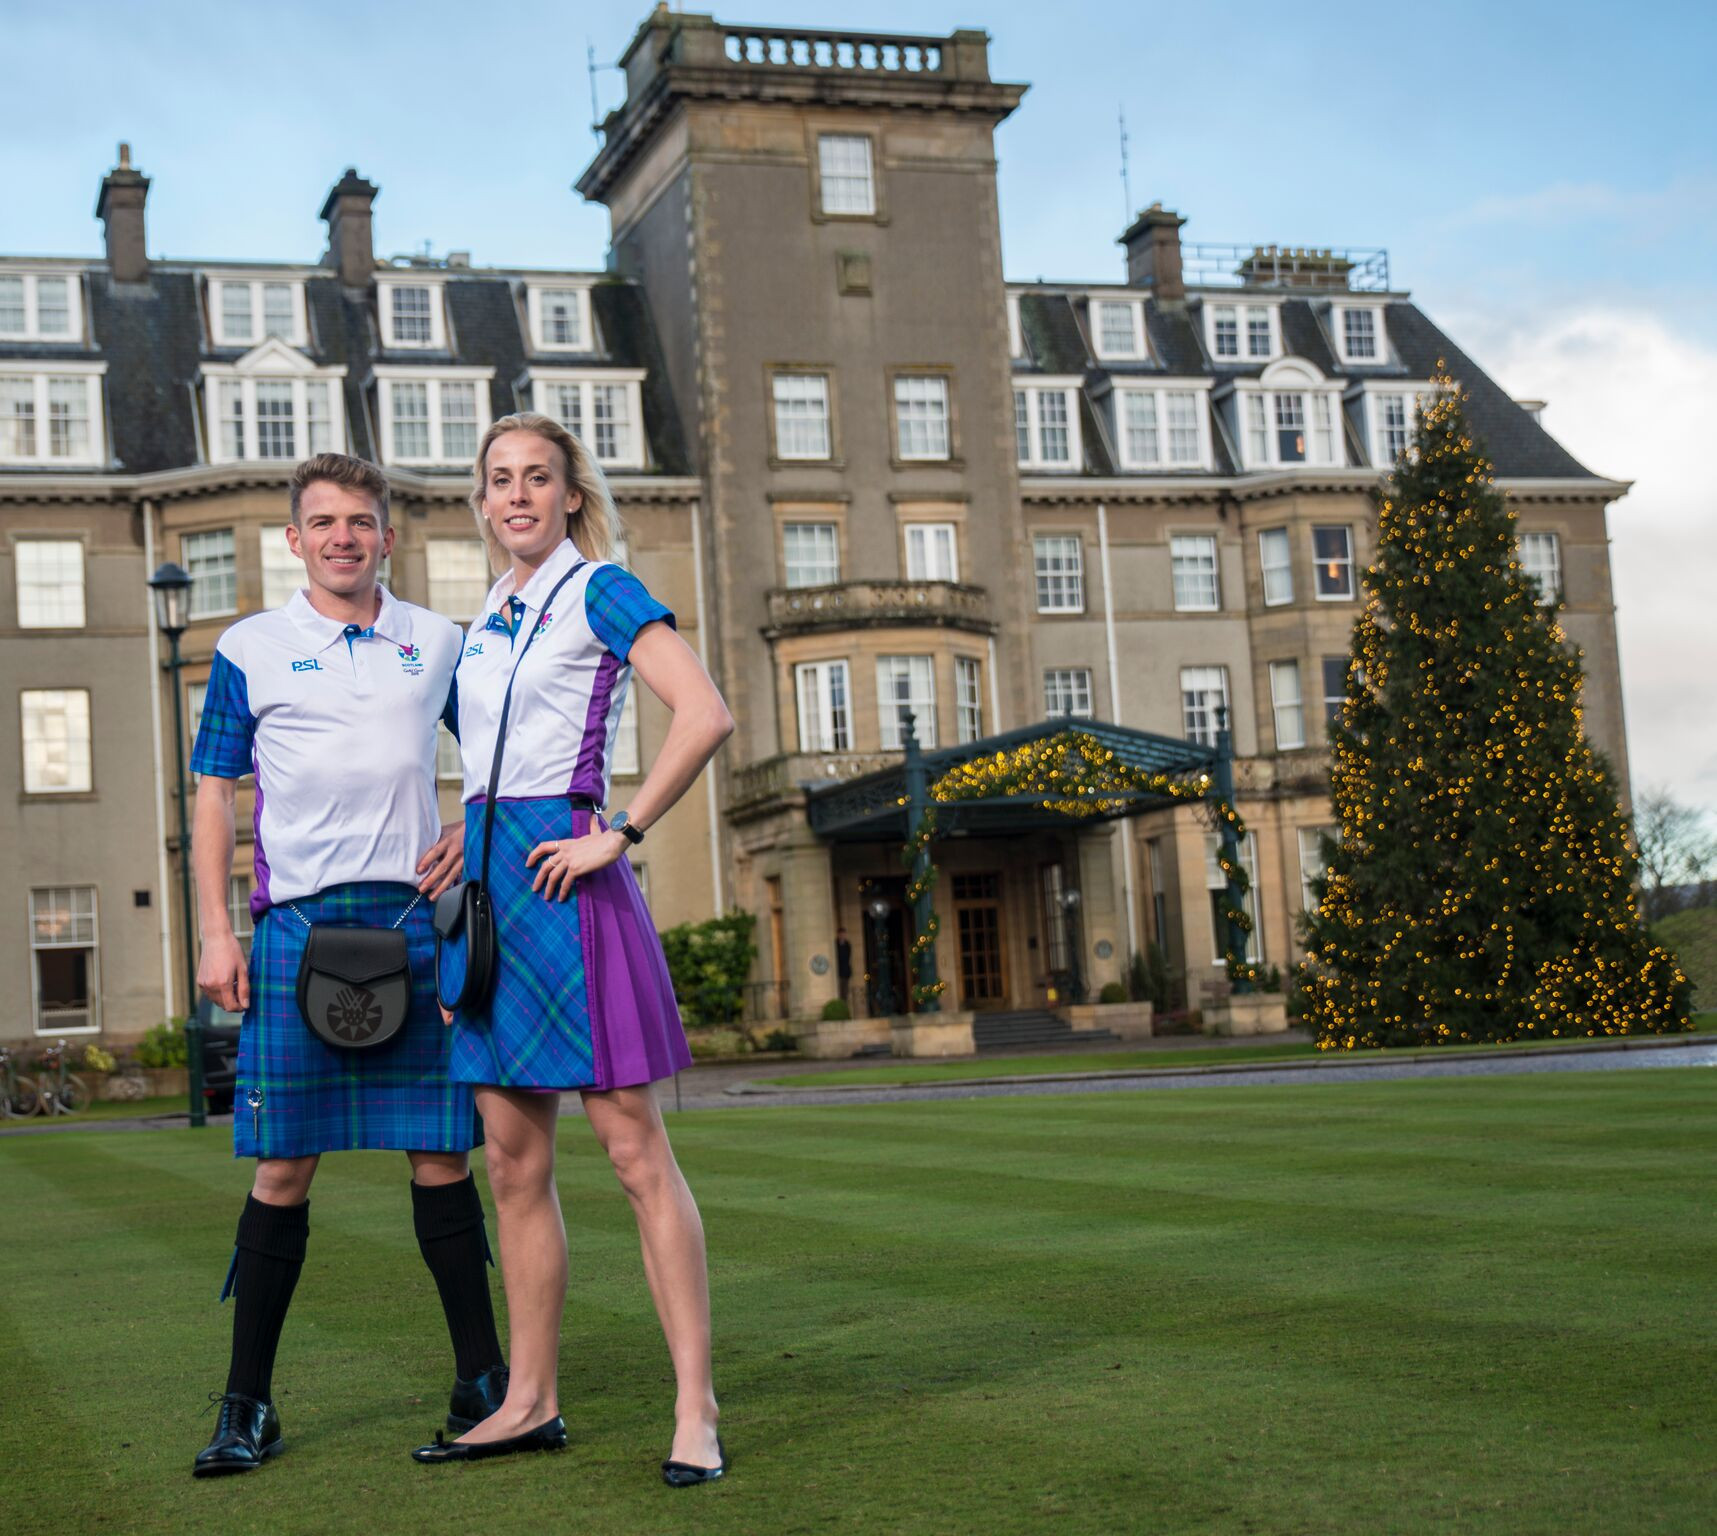 Andrew Butchart and Lynsey Sharp modelled the new uniform at The Gleneagles Hotel ©Team Scotland